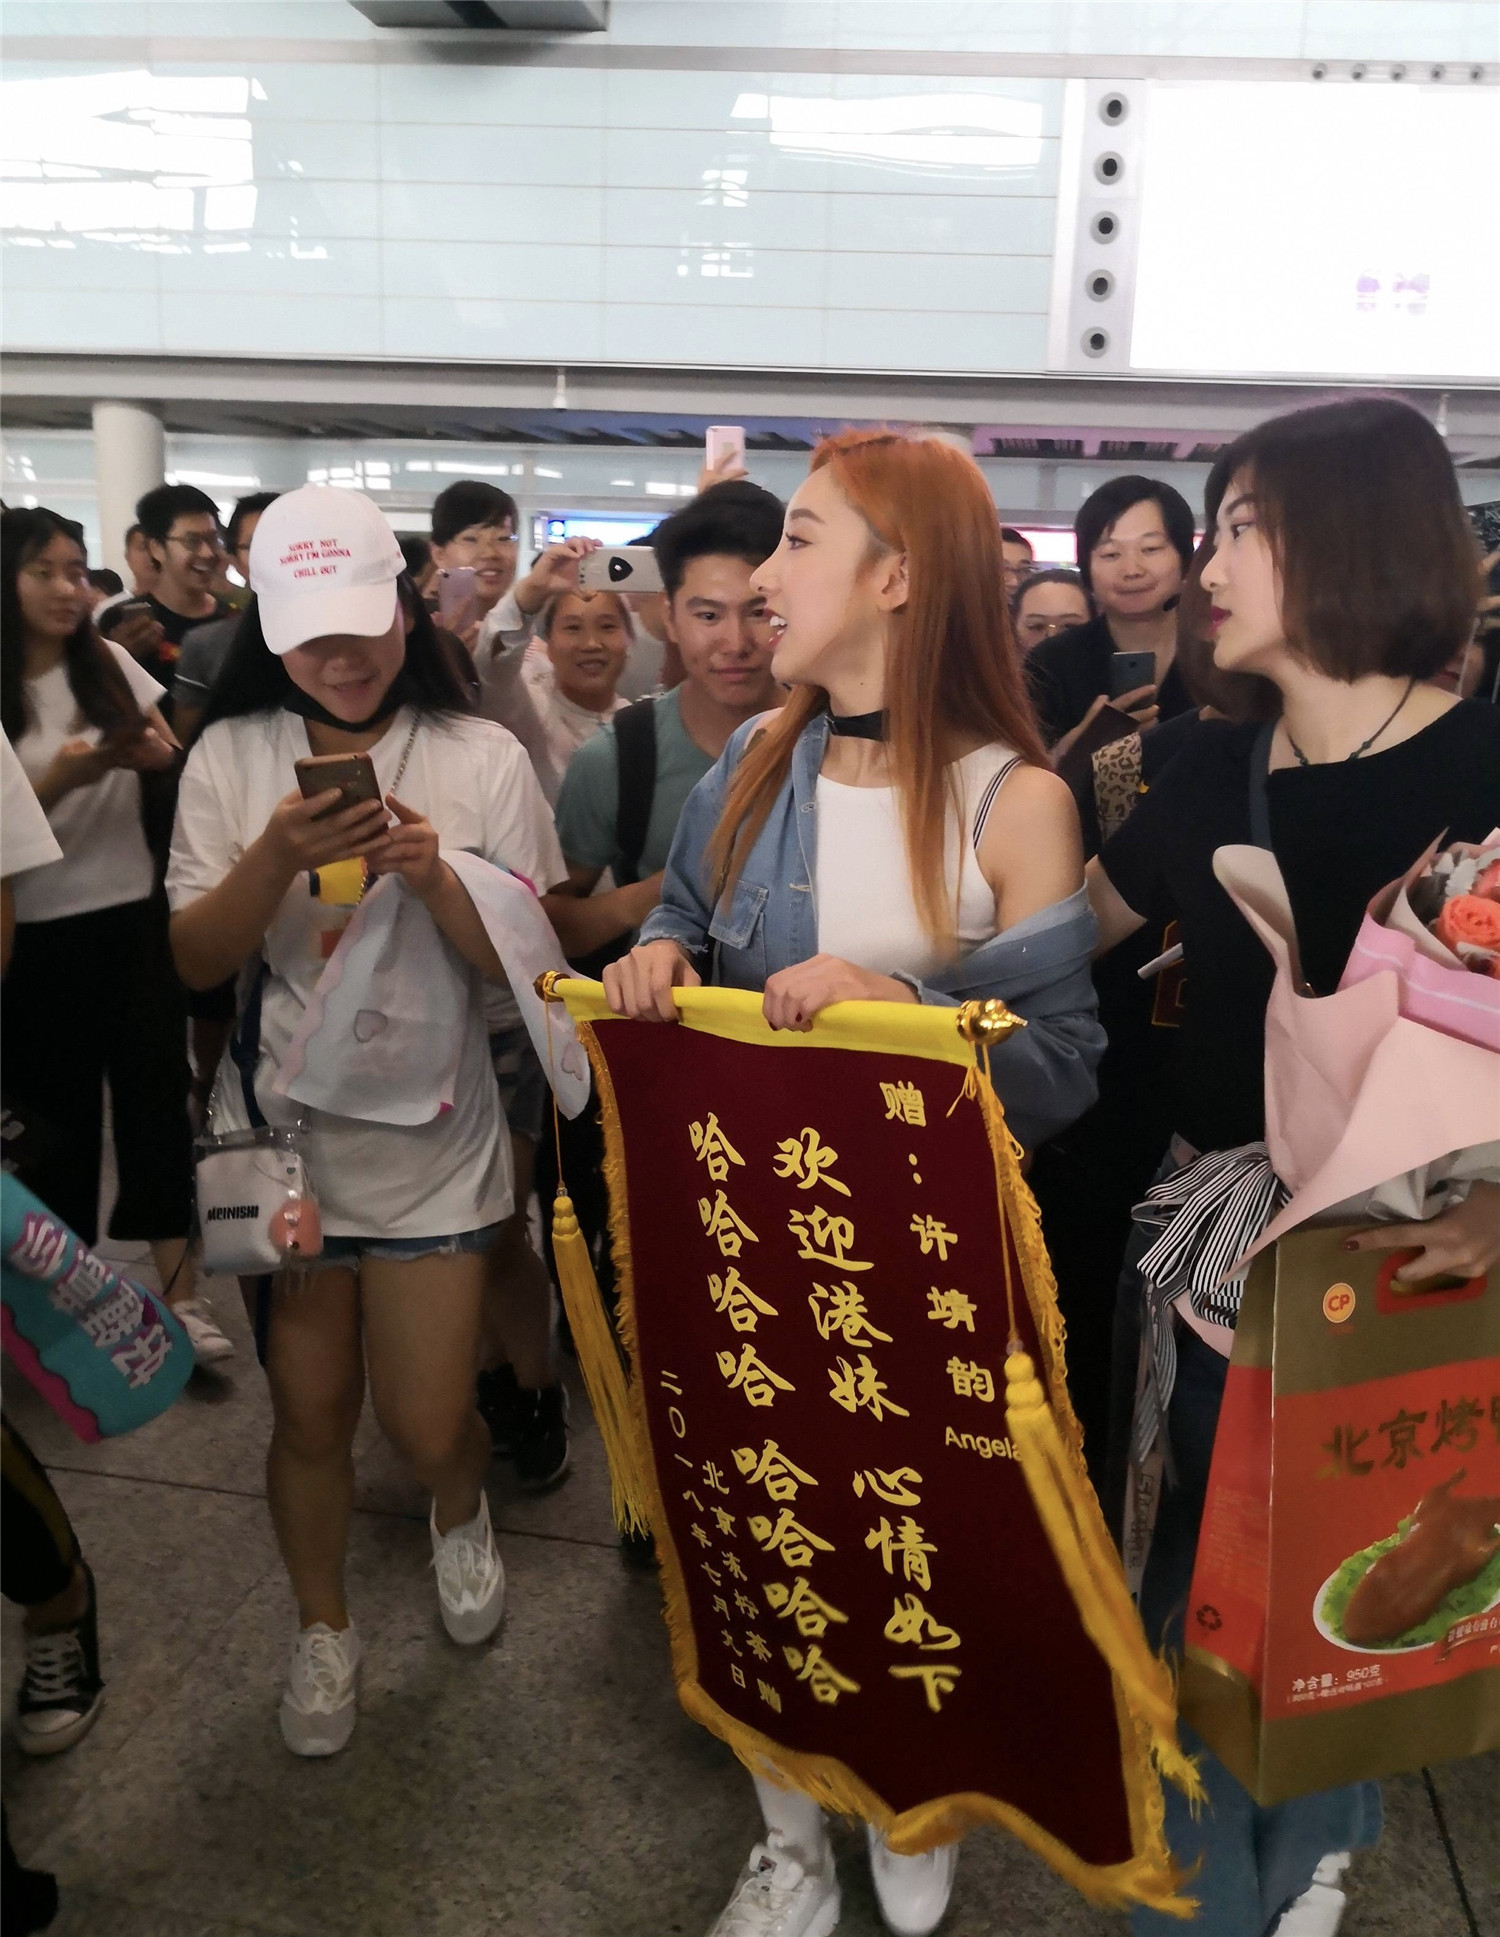 Hong Kong girl Angela Hui Beijing arrived at the fans to send the green onions to send the banner